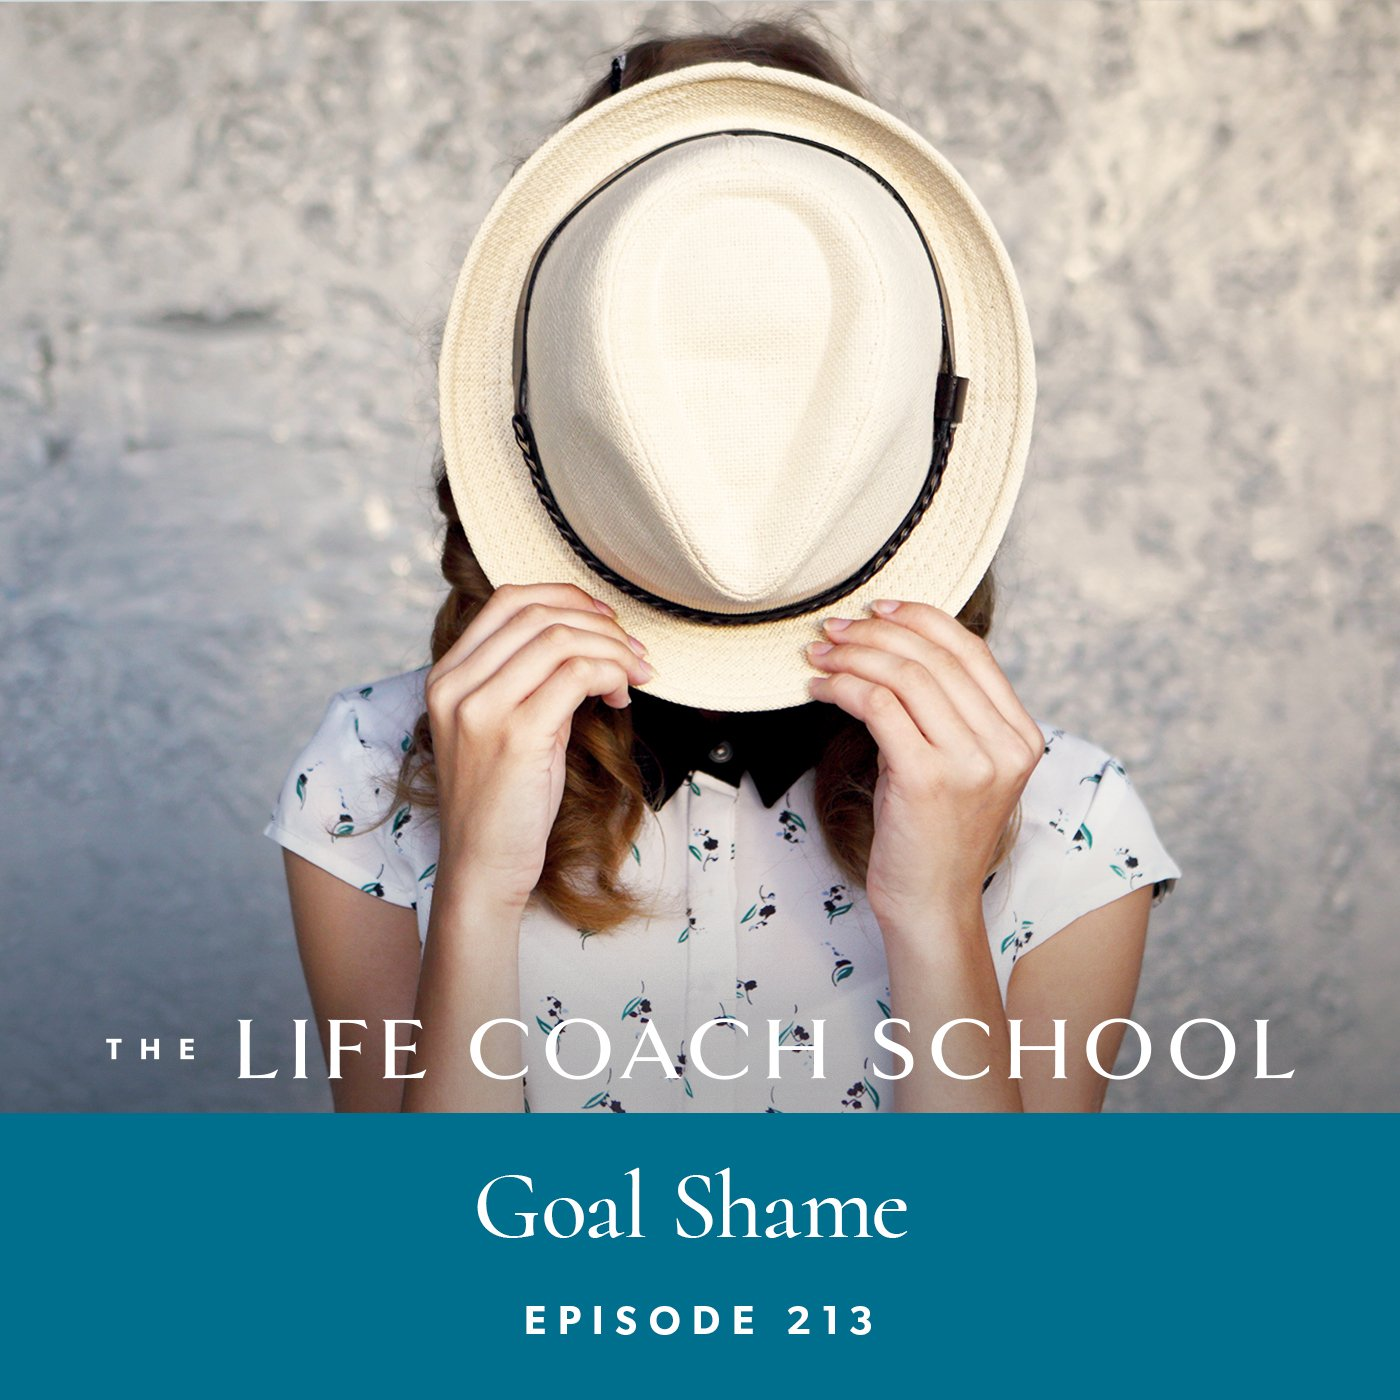 The Life Coach School Podcast with Brooke Castillo | Episode 213 | Goal Shame